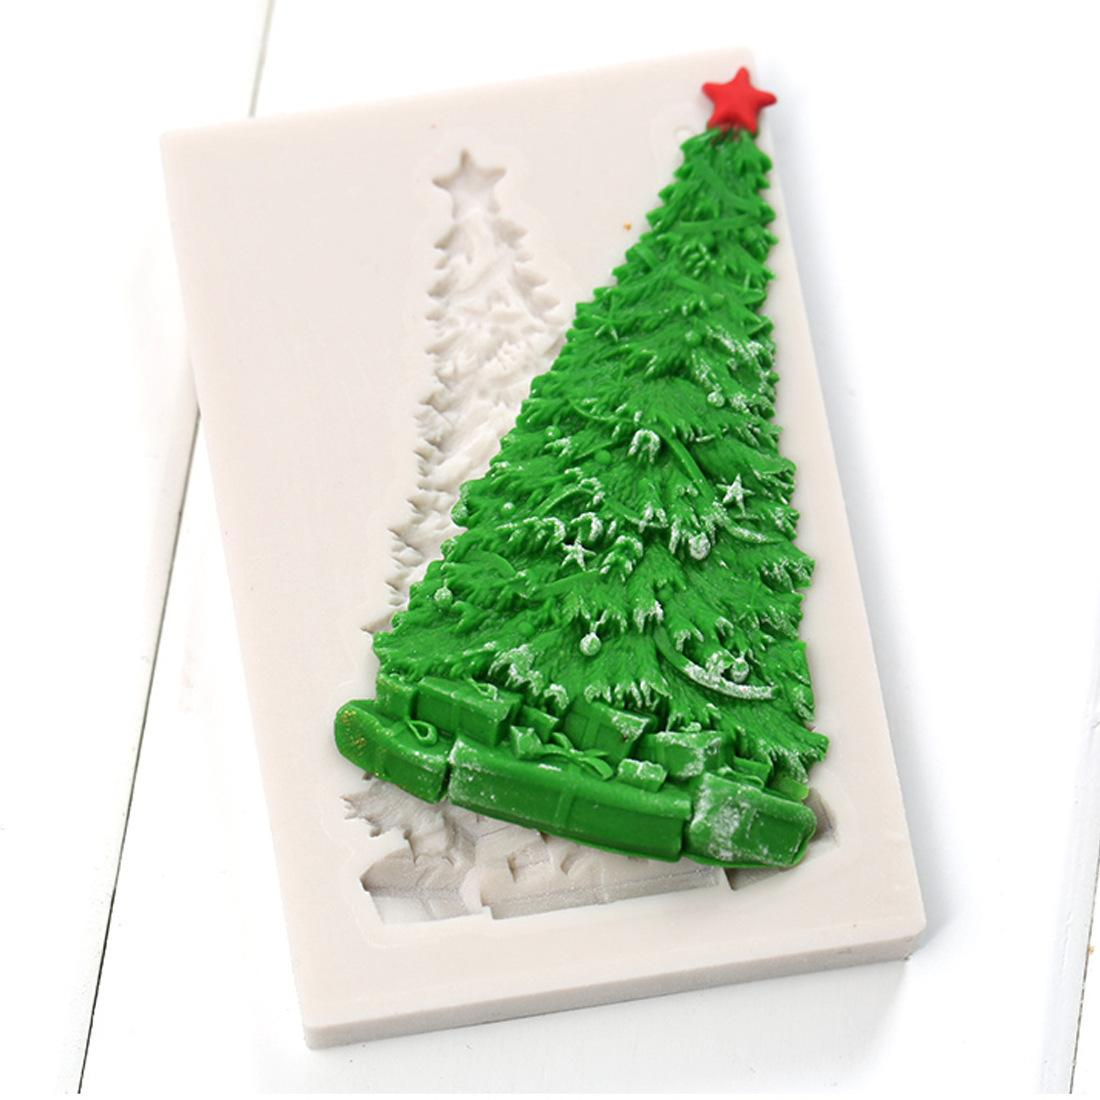 2018 wholesale christmas silicone molds christmas tree cake decorating fondant mold candy chocolate gumpaste moulds bakeware yb200322 from shutie